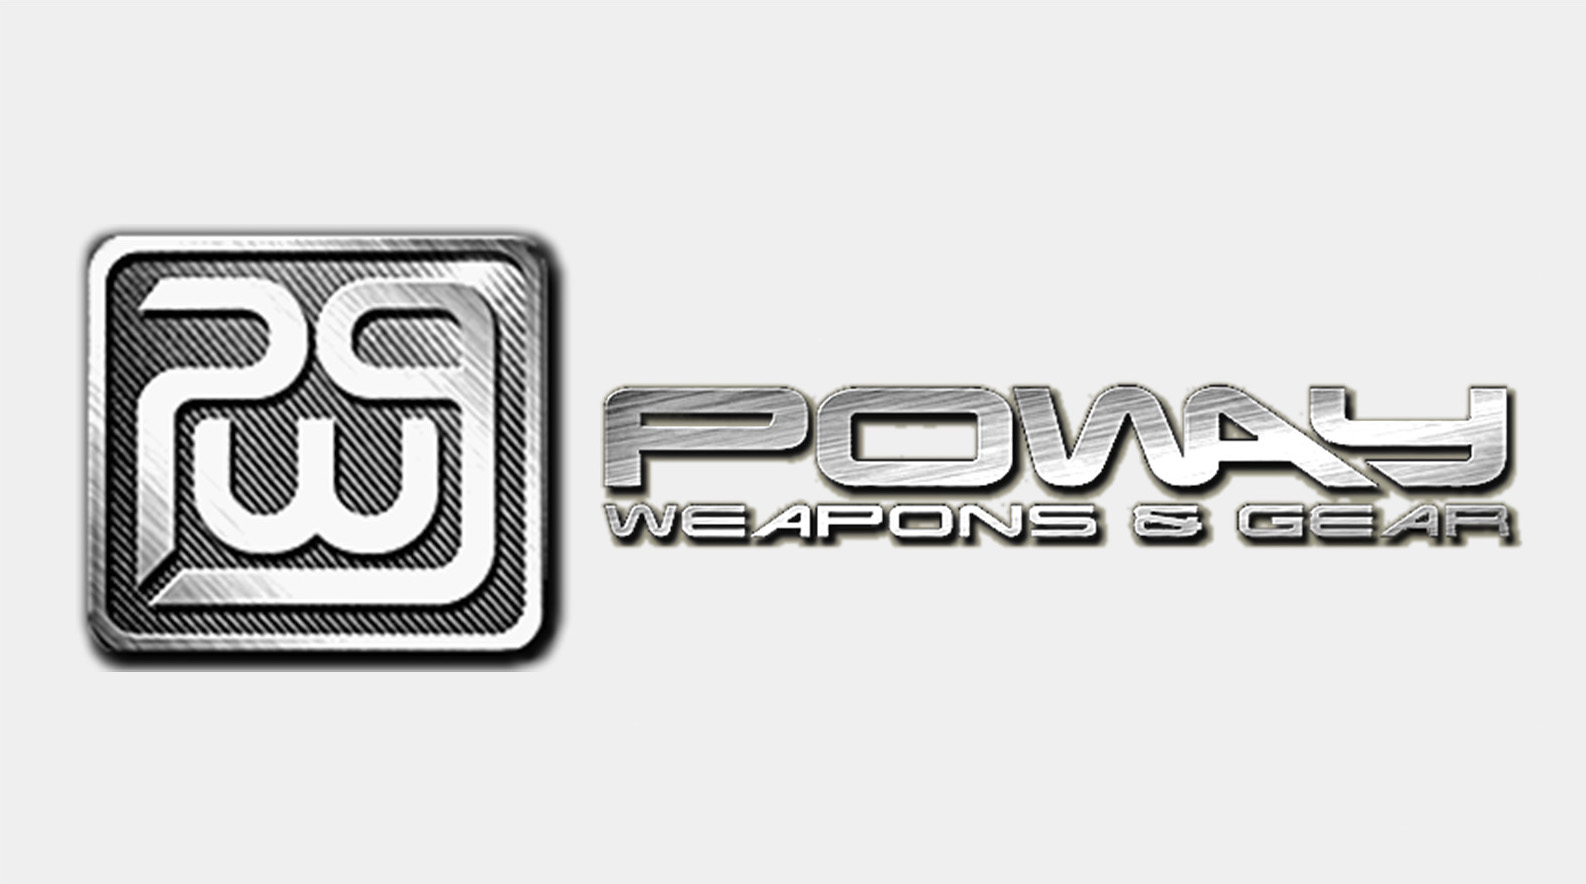 Poway Weapons and Gear